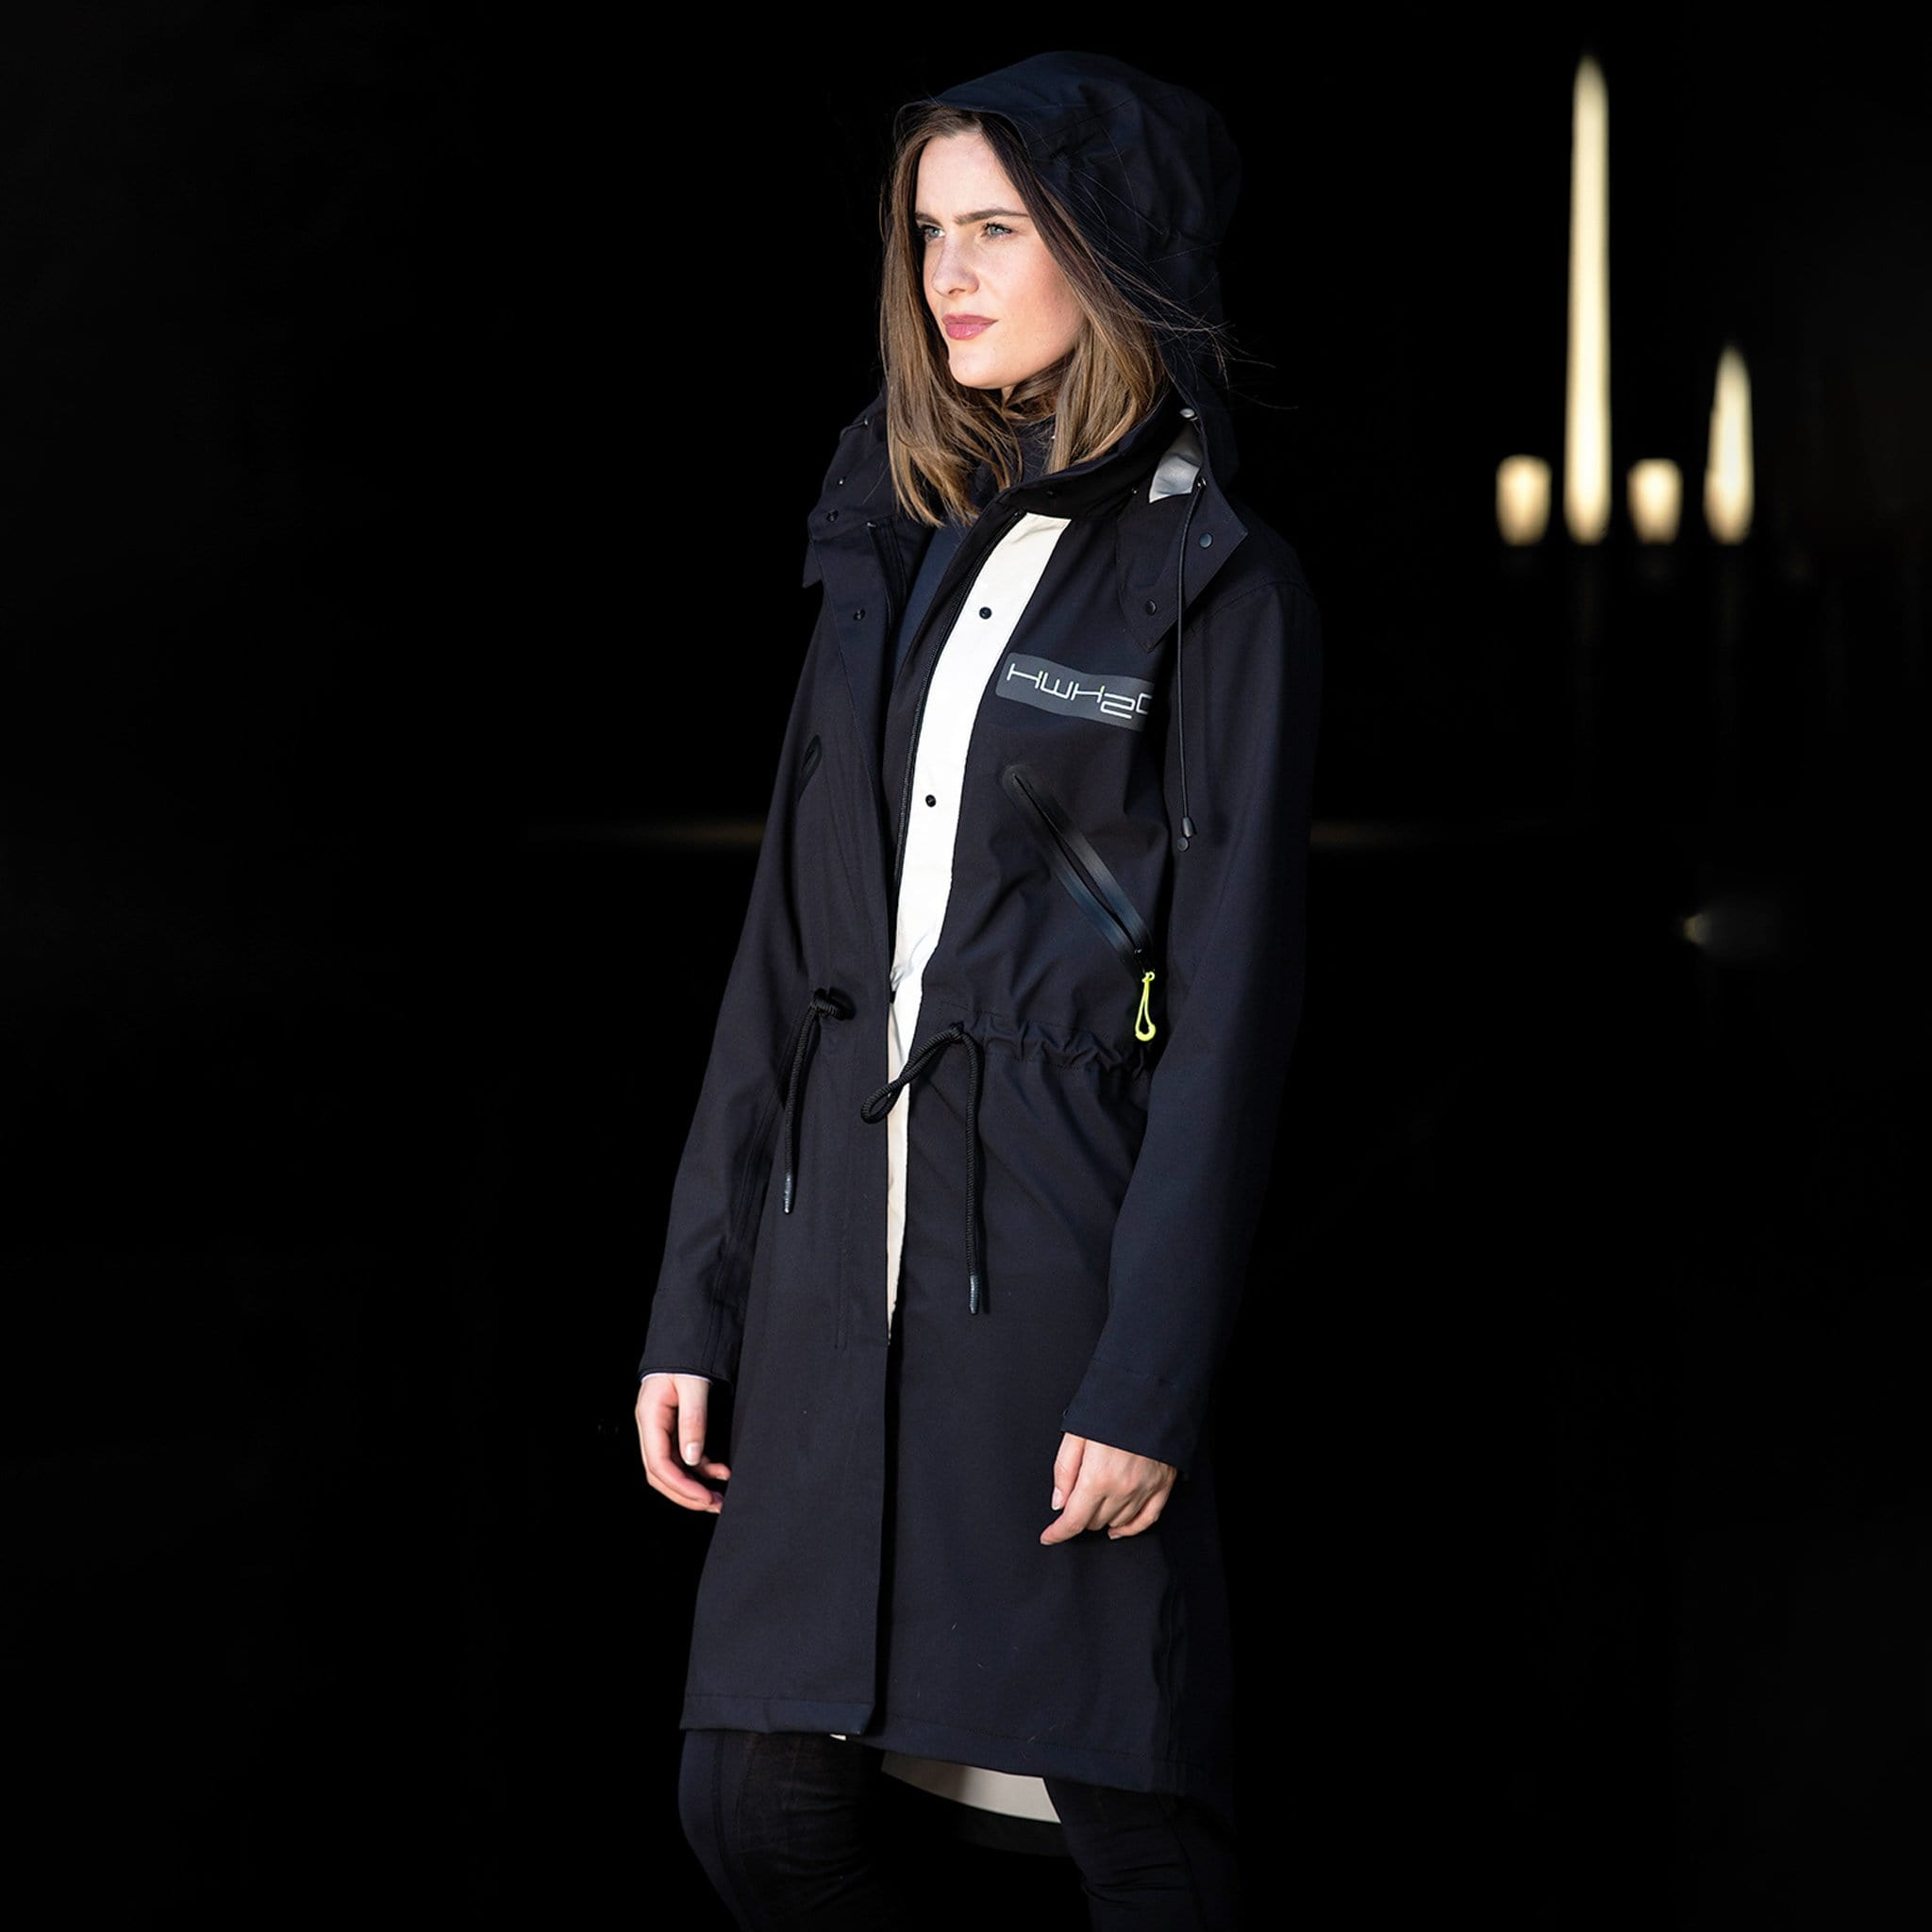 Horseware HWH2O Unisex Waterproof Parka CAHPHP Black On Model In Barn With Hood Up Side View